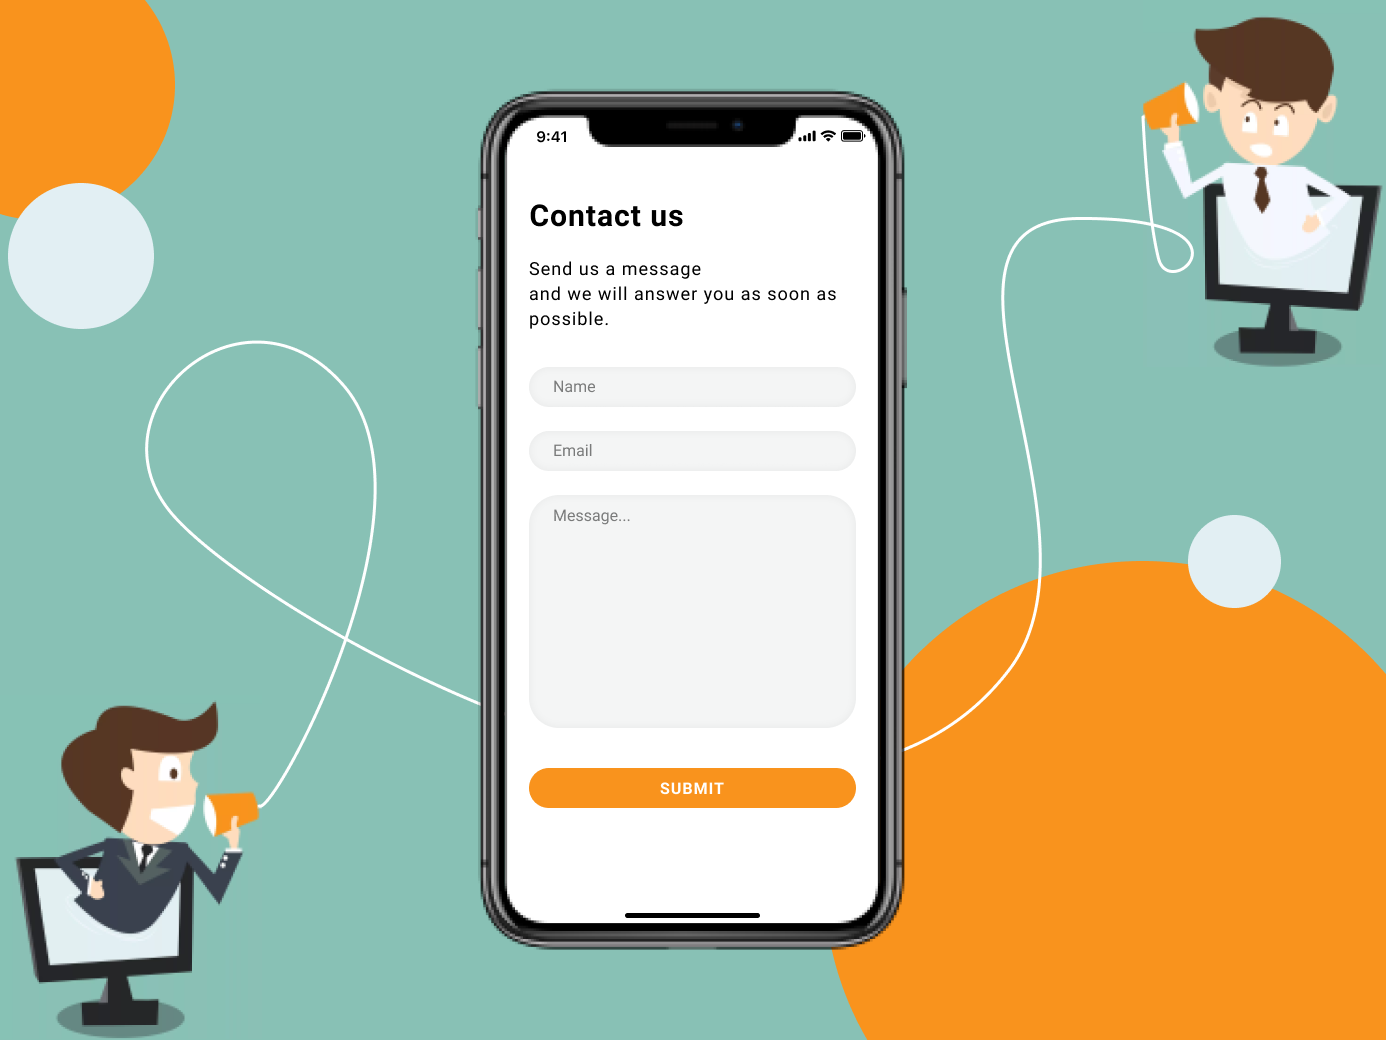 Contact Us - Daily UI #028 contact page contact us contact form contact ui daily challenge design daily 100